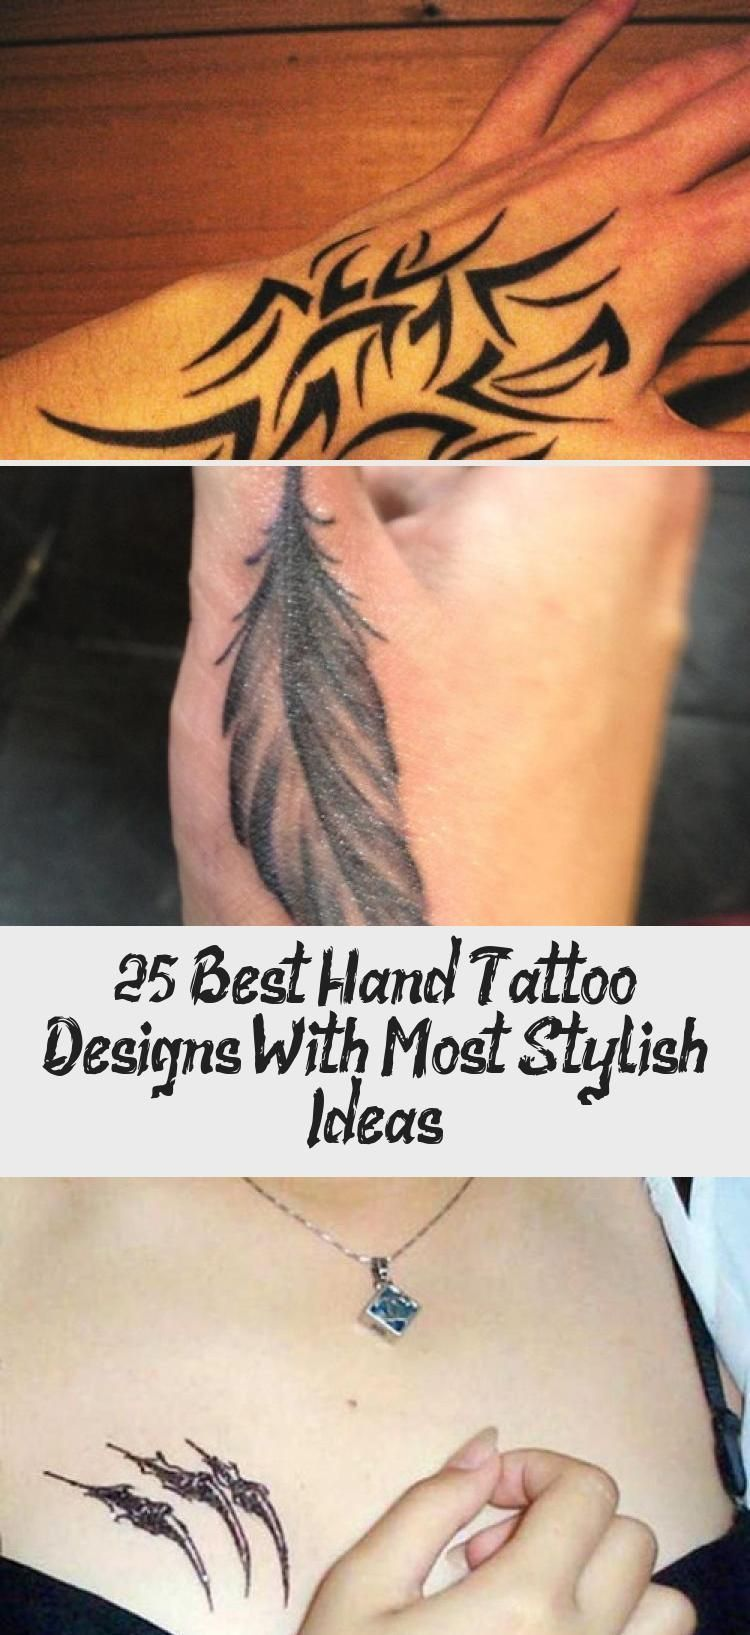 25 Best Meaningful Hand Tattoo Designs For Men And Women Tattoodesignsankle Ta 25 Best Meaningful In 2020 Hand Tattoos Tattoo Designs Men Hand Tattoos For Guys